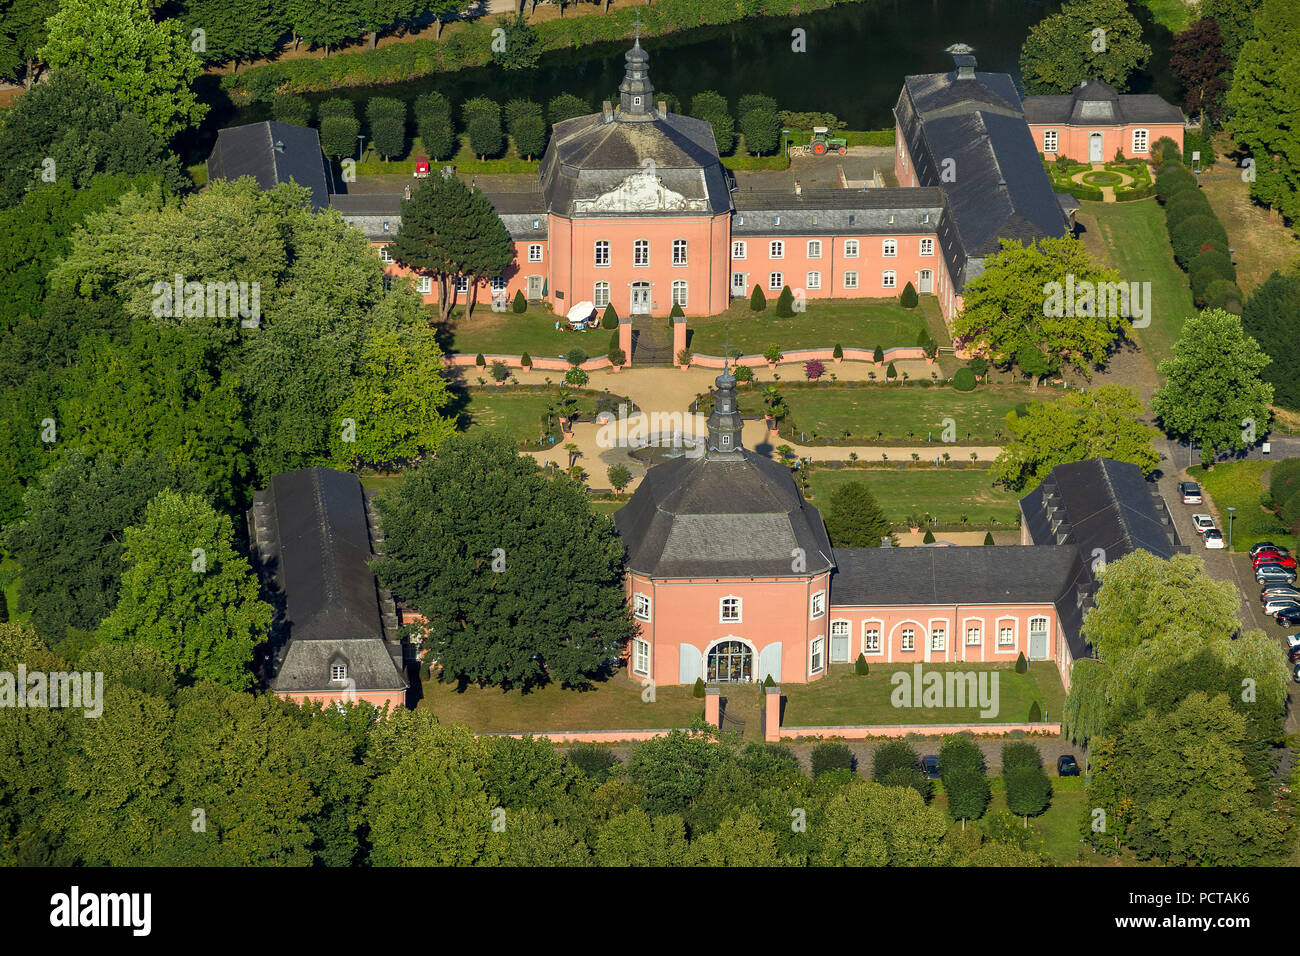 Wickrath Castle, moated castle complex at the Niers, park, outer bailey, Mönchengladbach, Lower Rhine, North Rhine-Westphalia, Germany, Europe - Stock Image